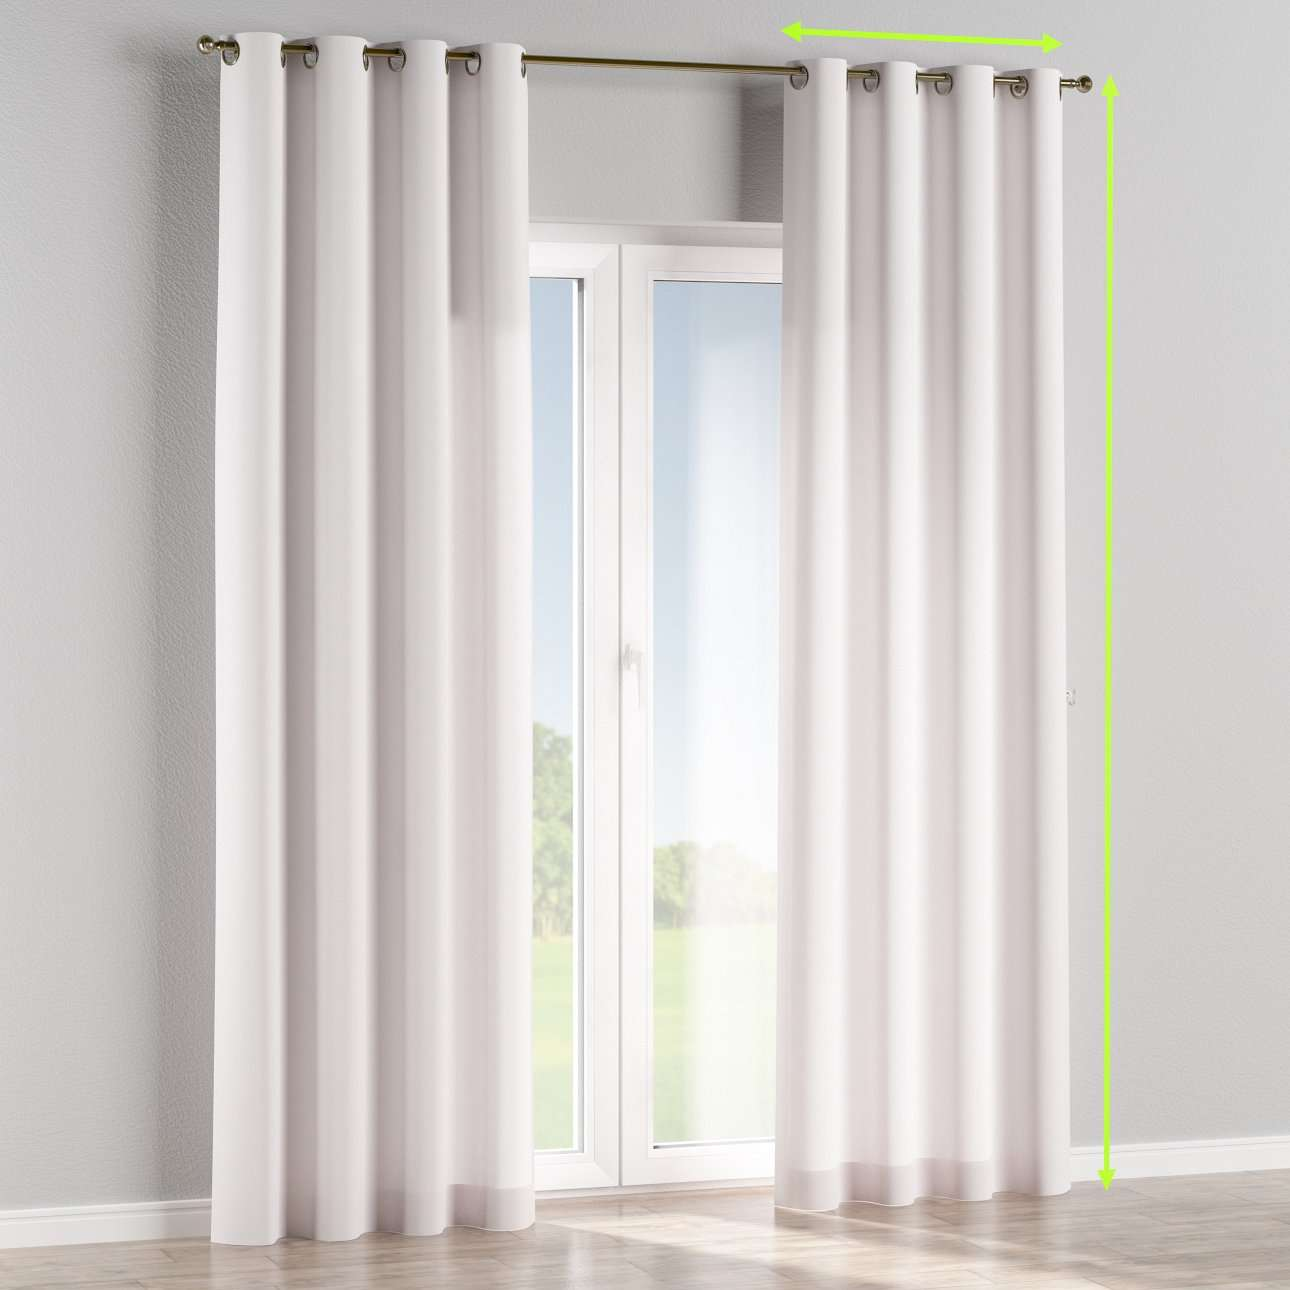 Eyelet lined curtains in collection Cotton Panama, fabric: 702-34